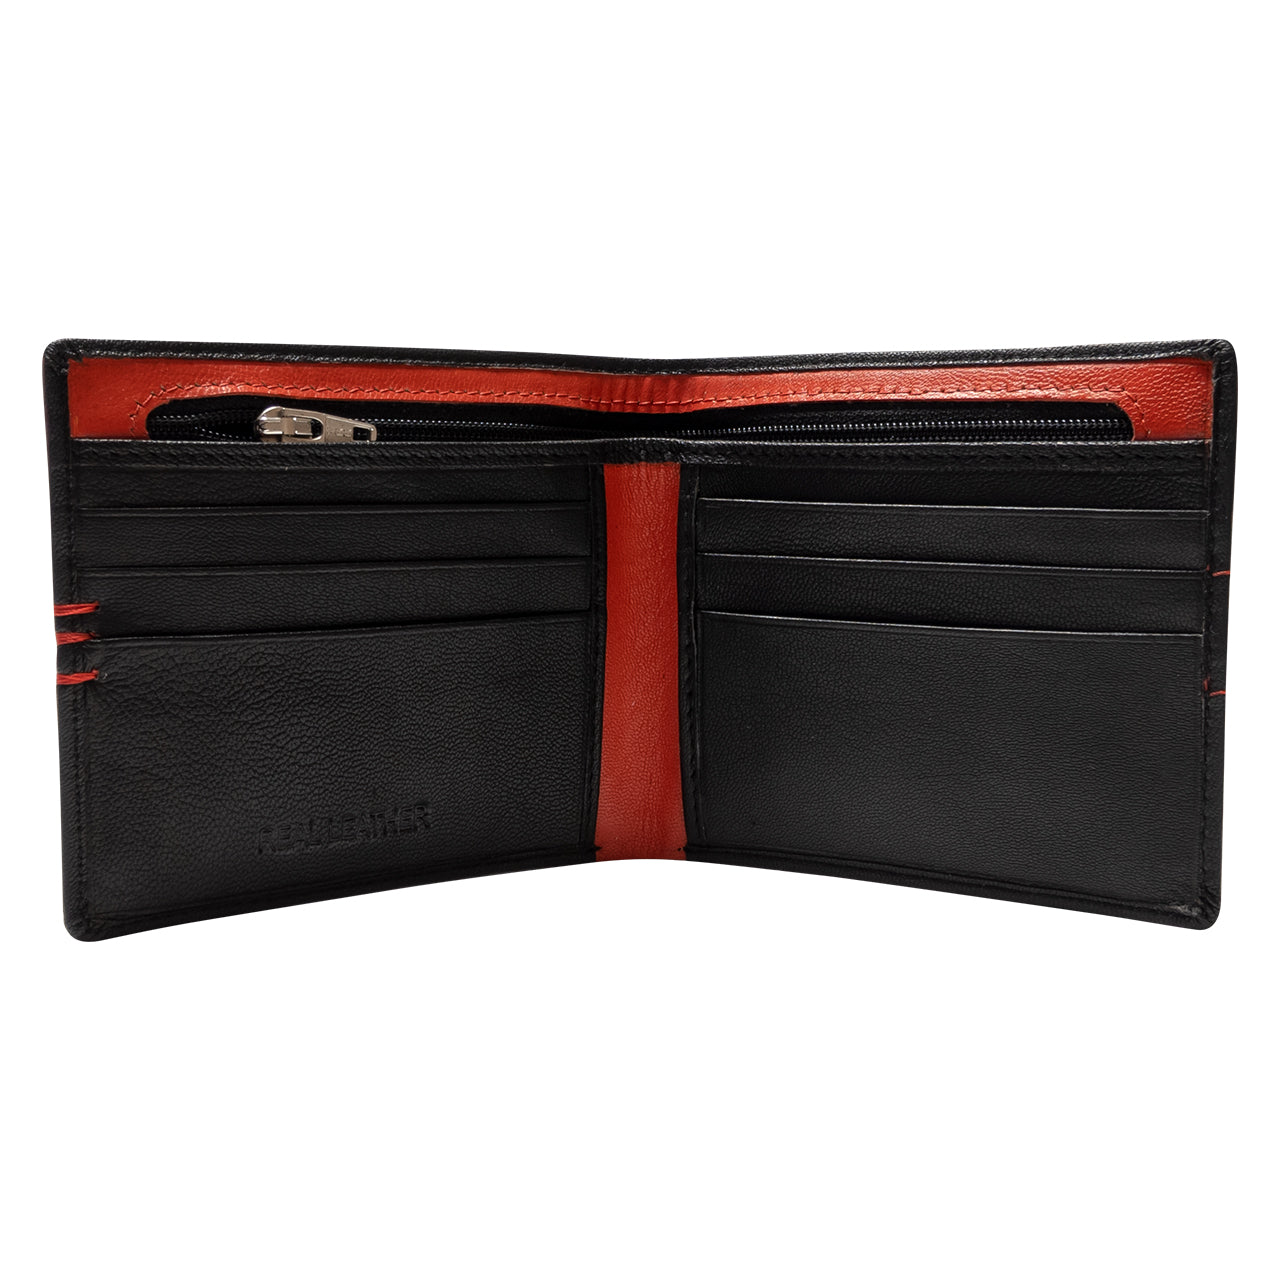 NFFC Black Stitch Leather Wallet - Nottingham Forest